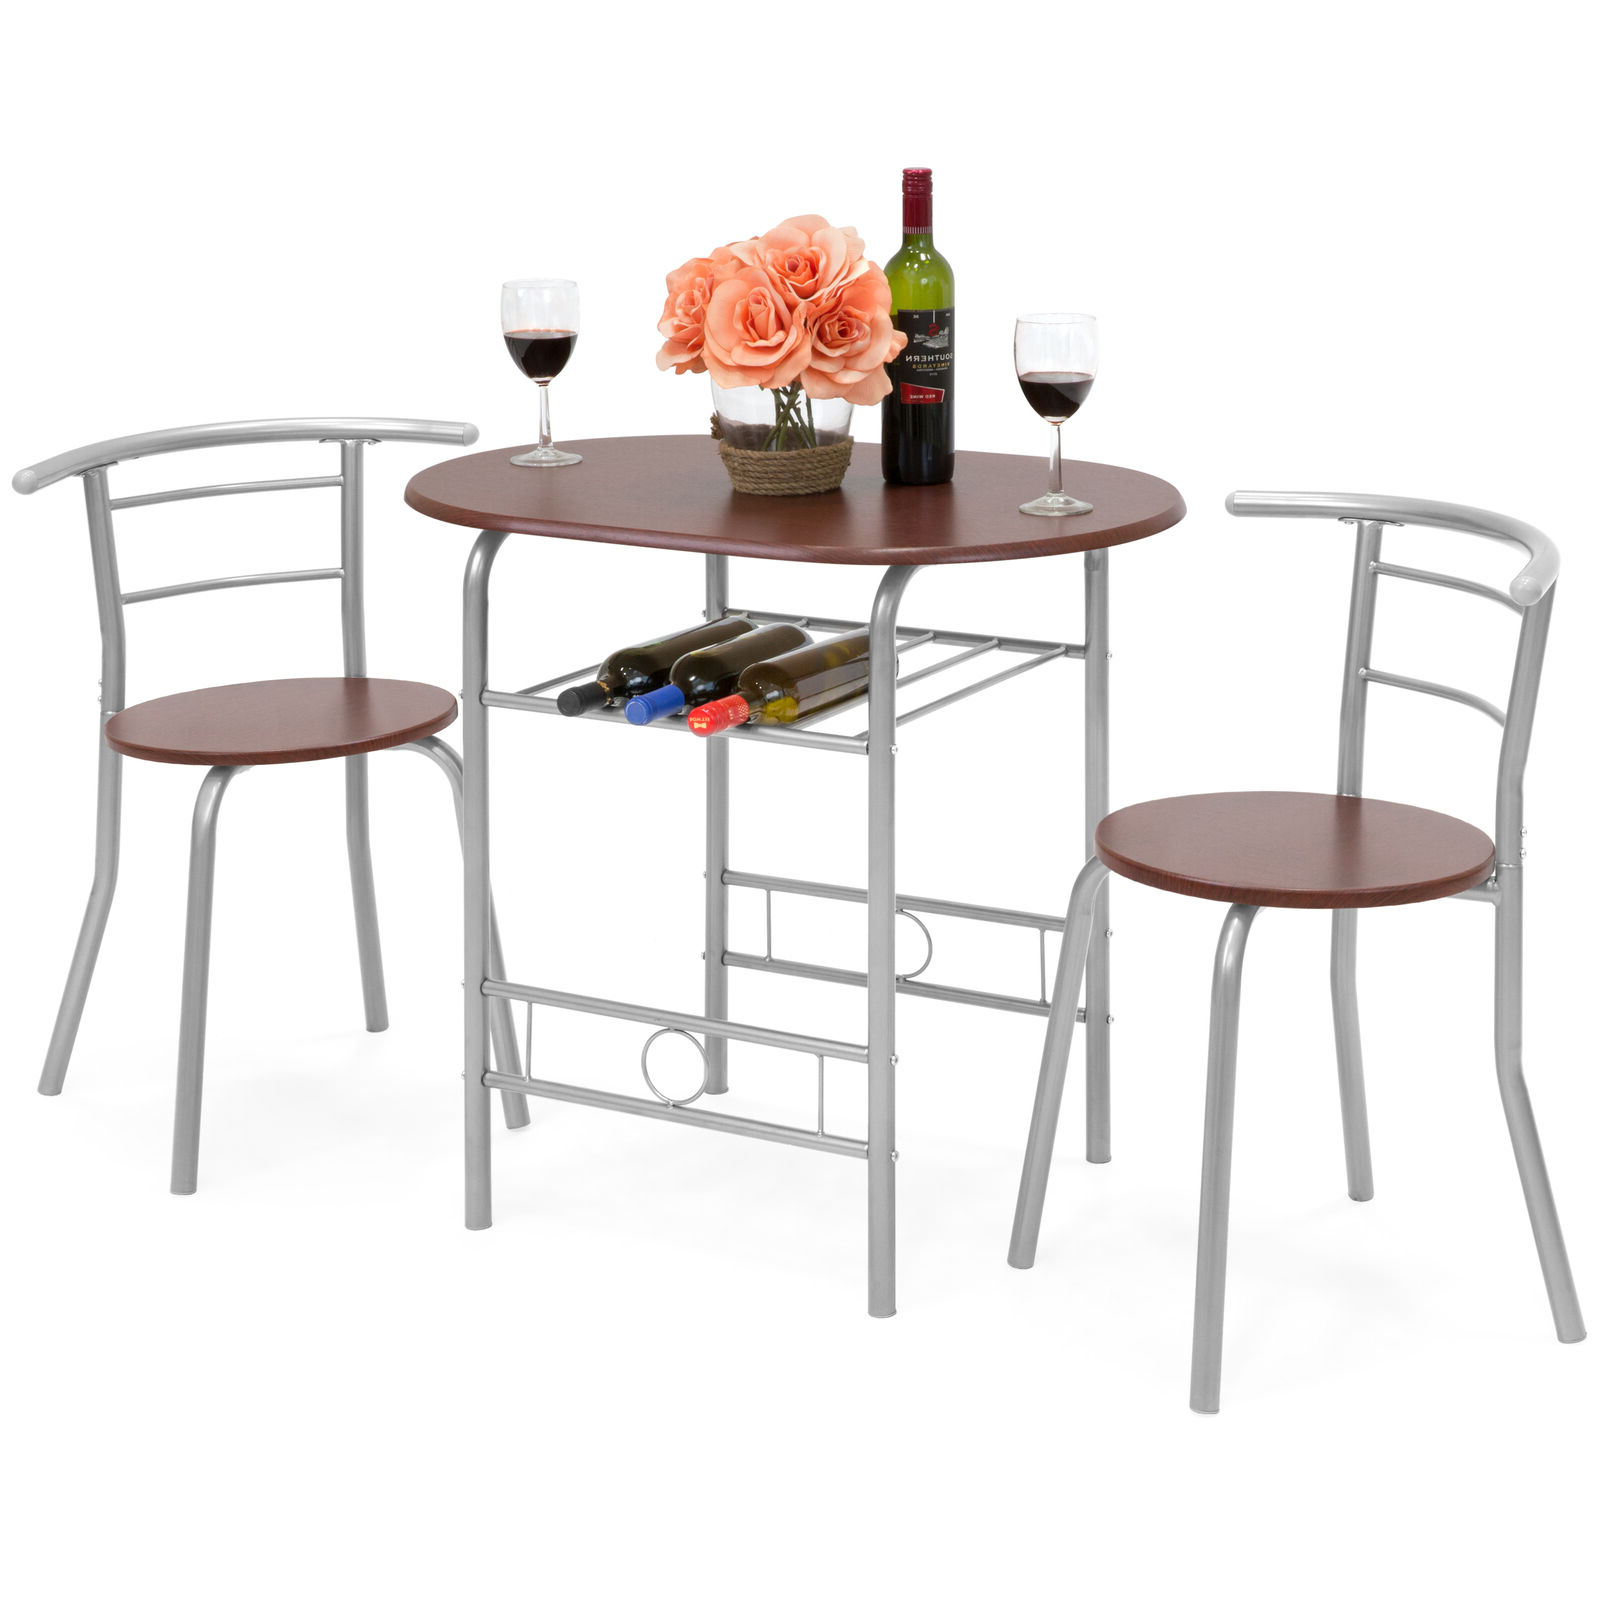 Bcp 3 Piece Wooden Dining Table Set W/ 2 Chairs, 1 Table (View 12 of 30)